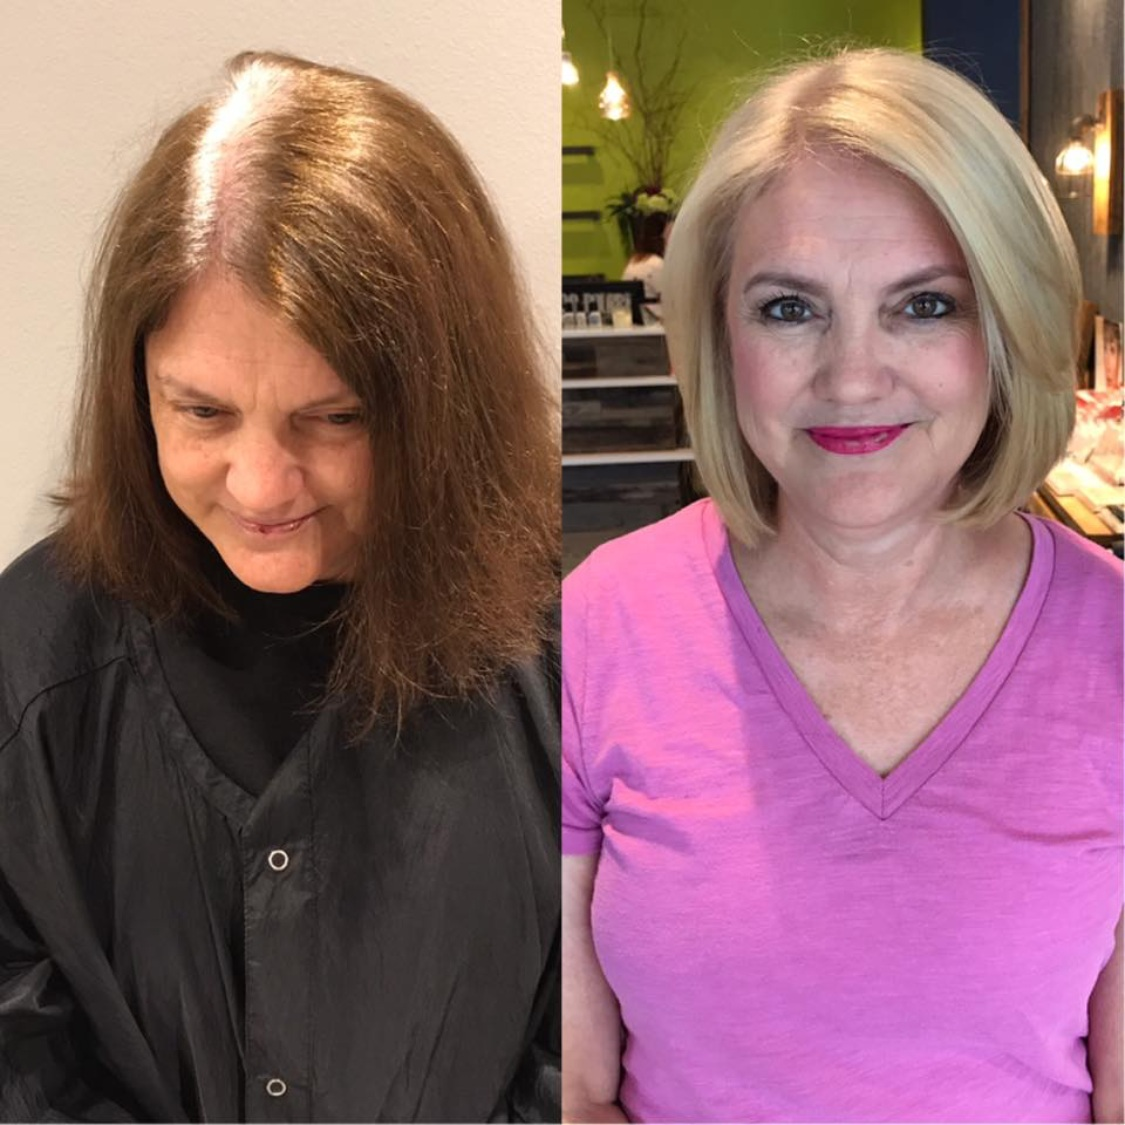 Rebecca Crosby Stylist Artistik Edge Hair Salon Lake Highlands Texas Blonde before and after.png